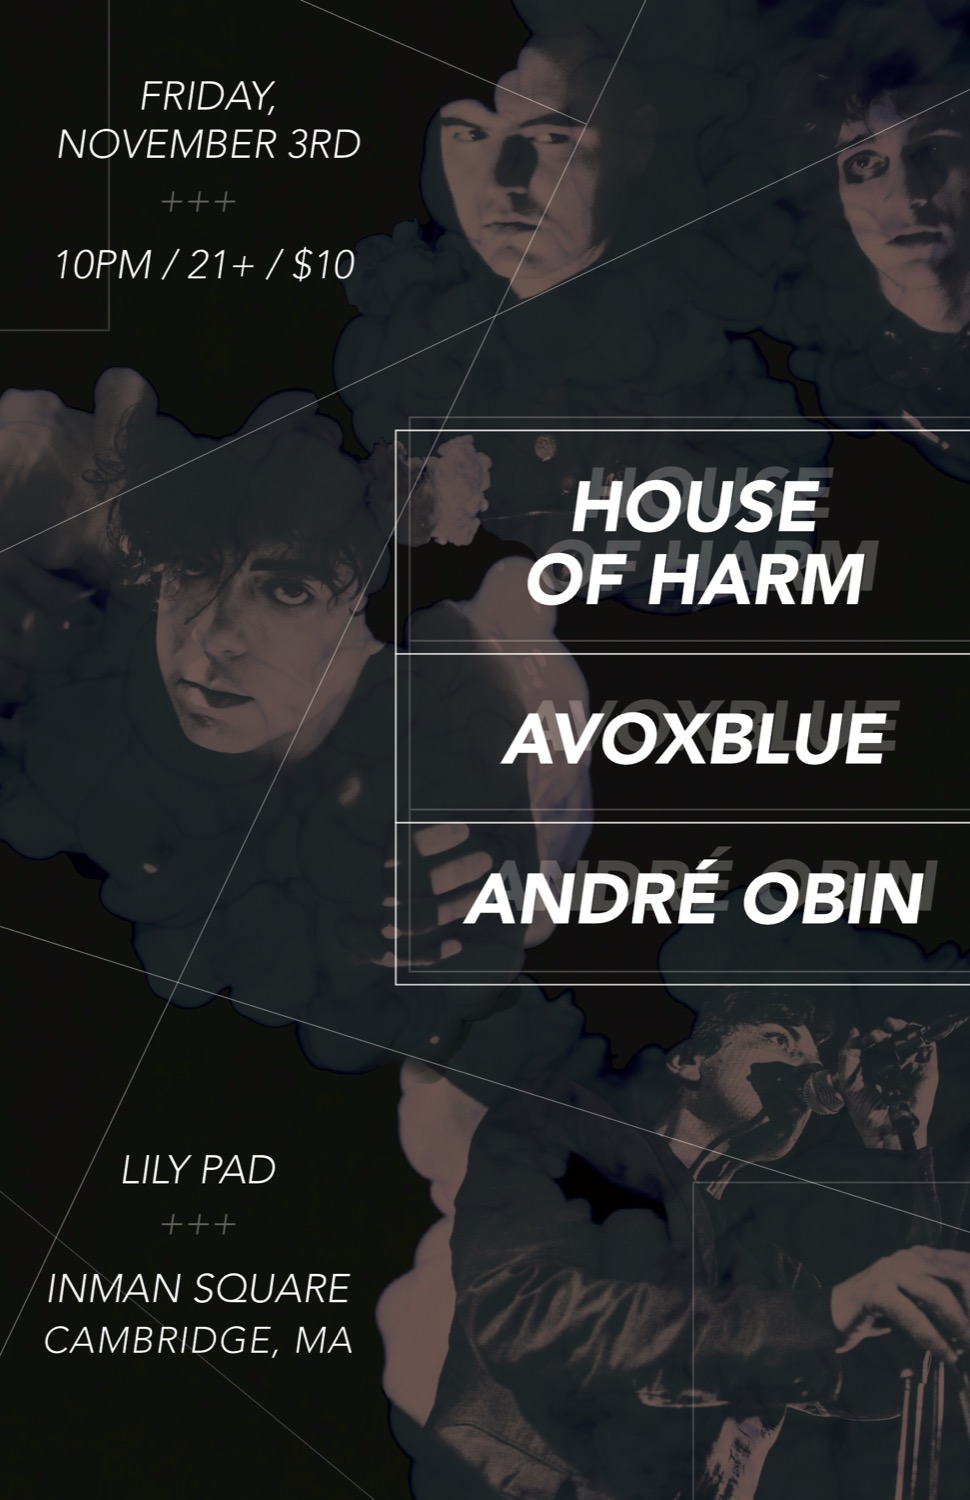 HoH AVB AT Flyer copy_web.jpg